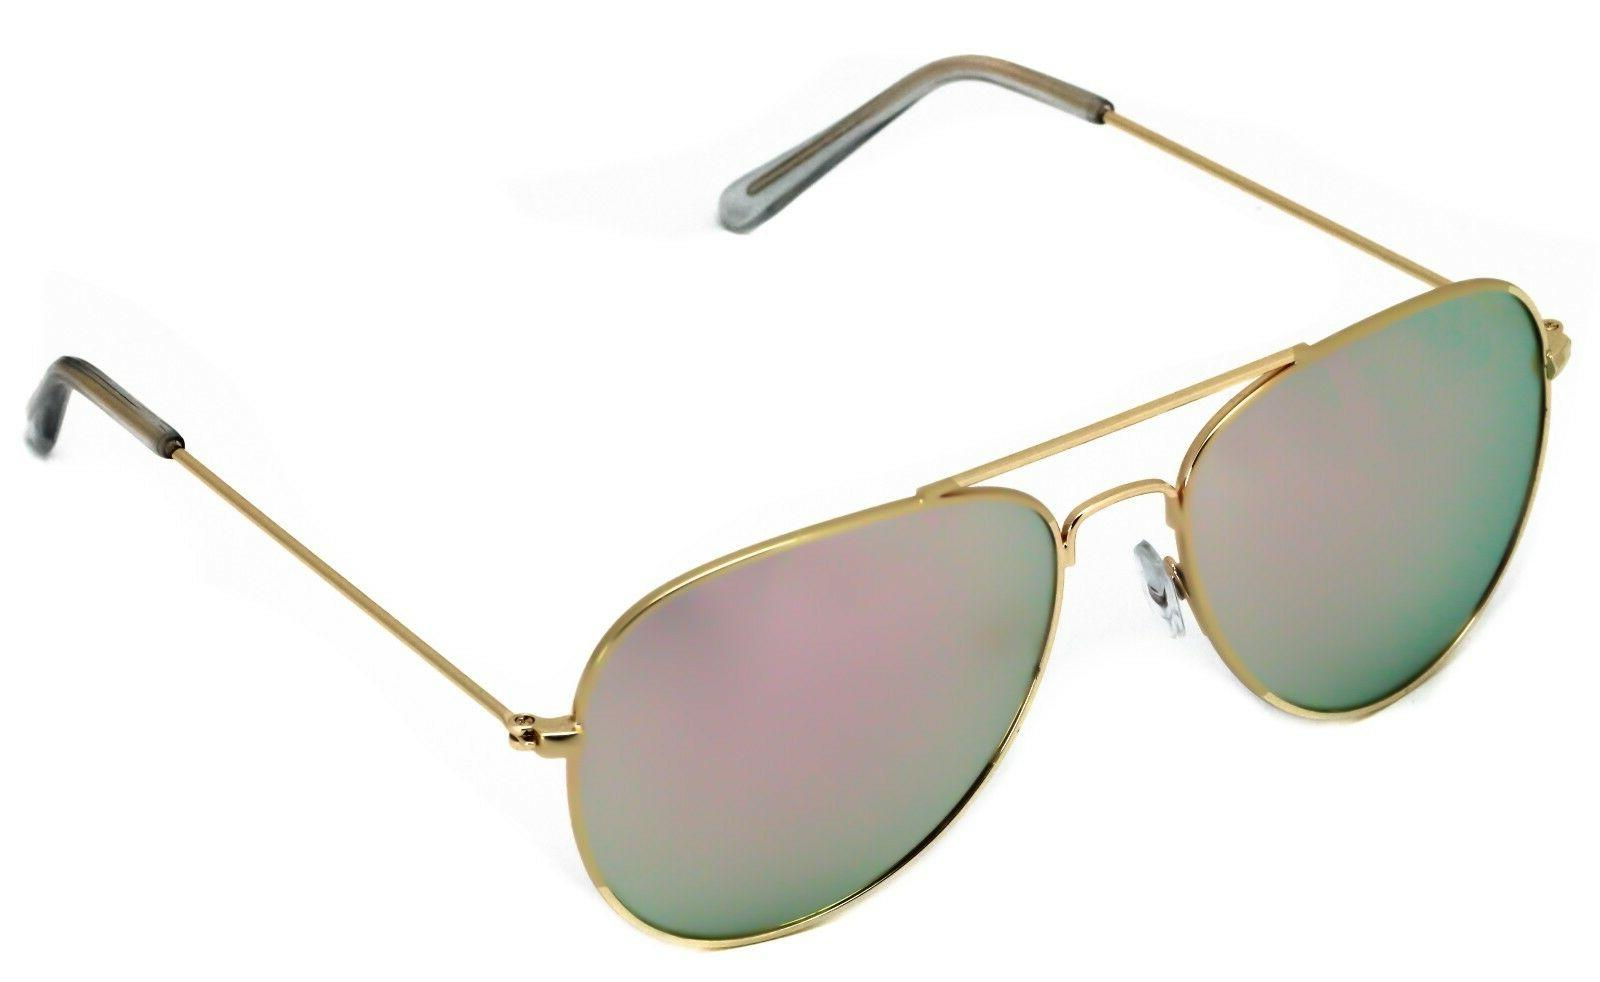 New Rose Aviator Unisex Sunglasses Iridescent Men